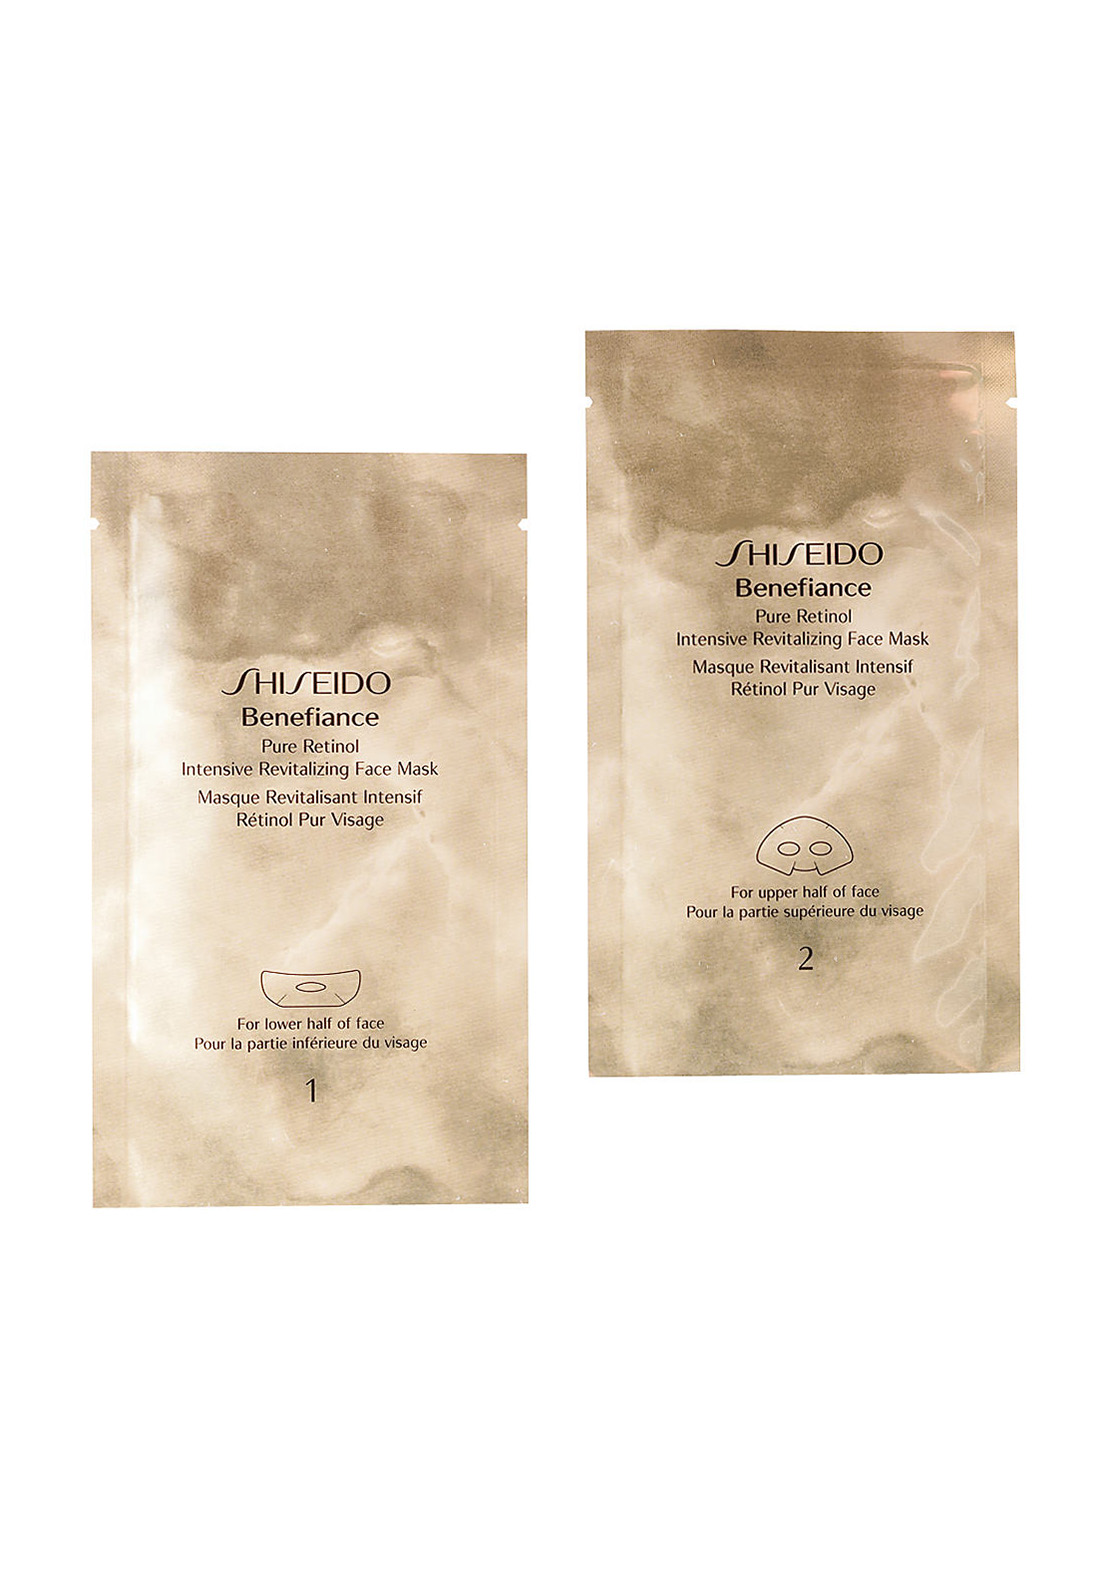 Shiseido Benefiance Pure Retinol Intensive Revitalising Face Mask